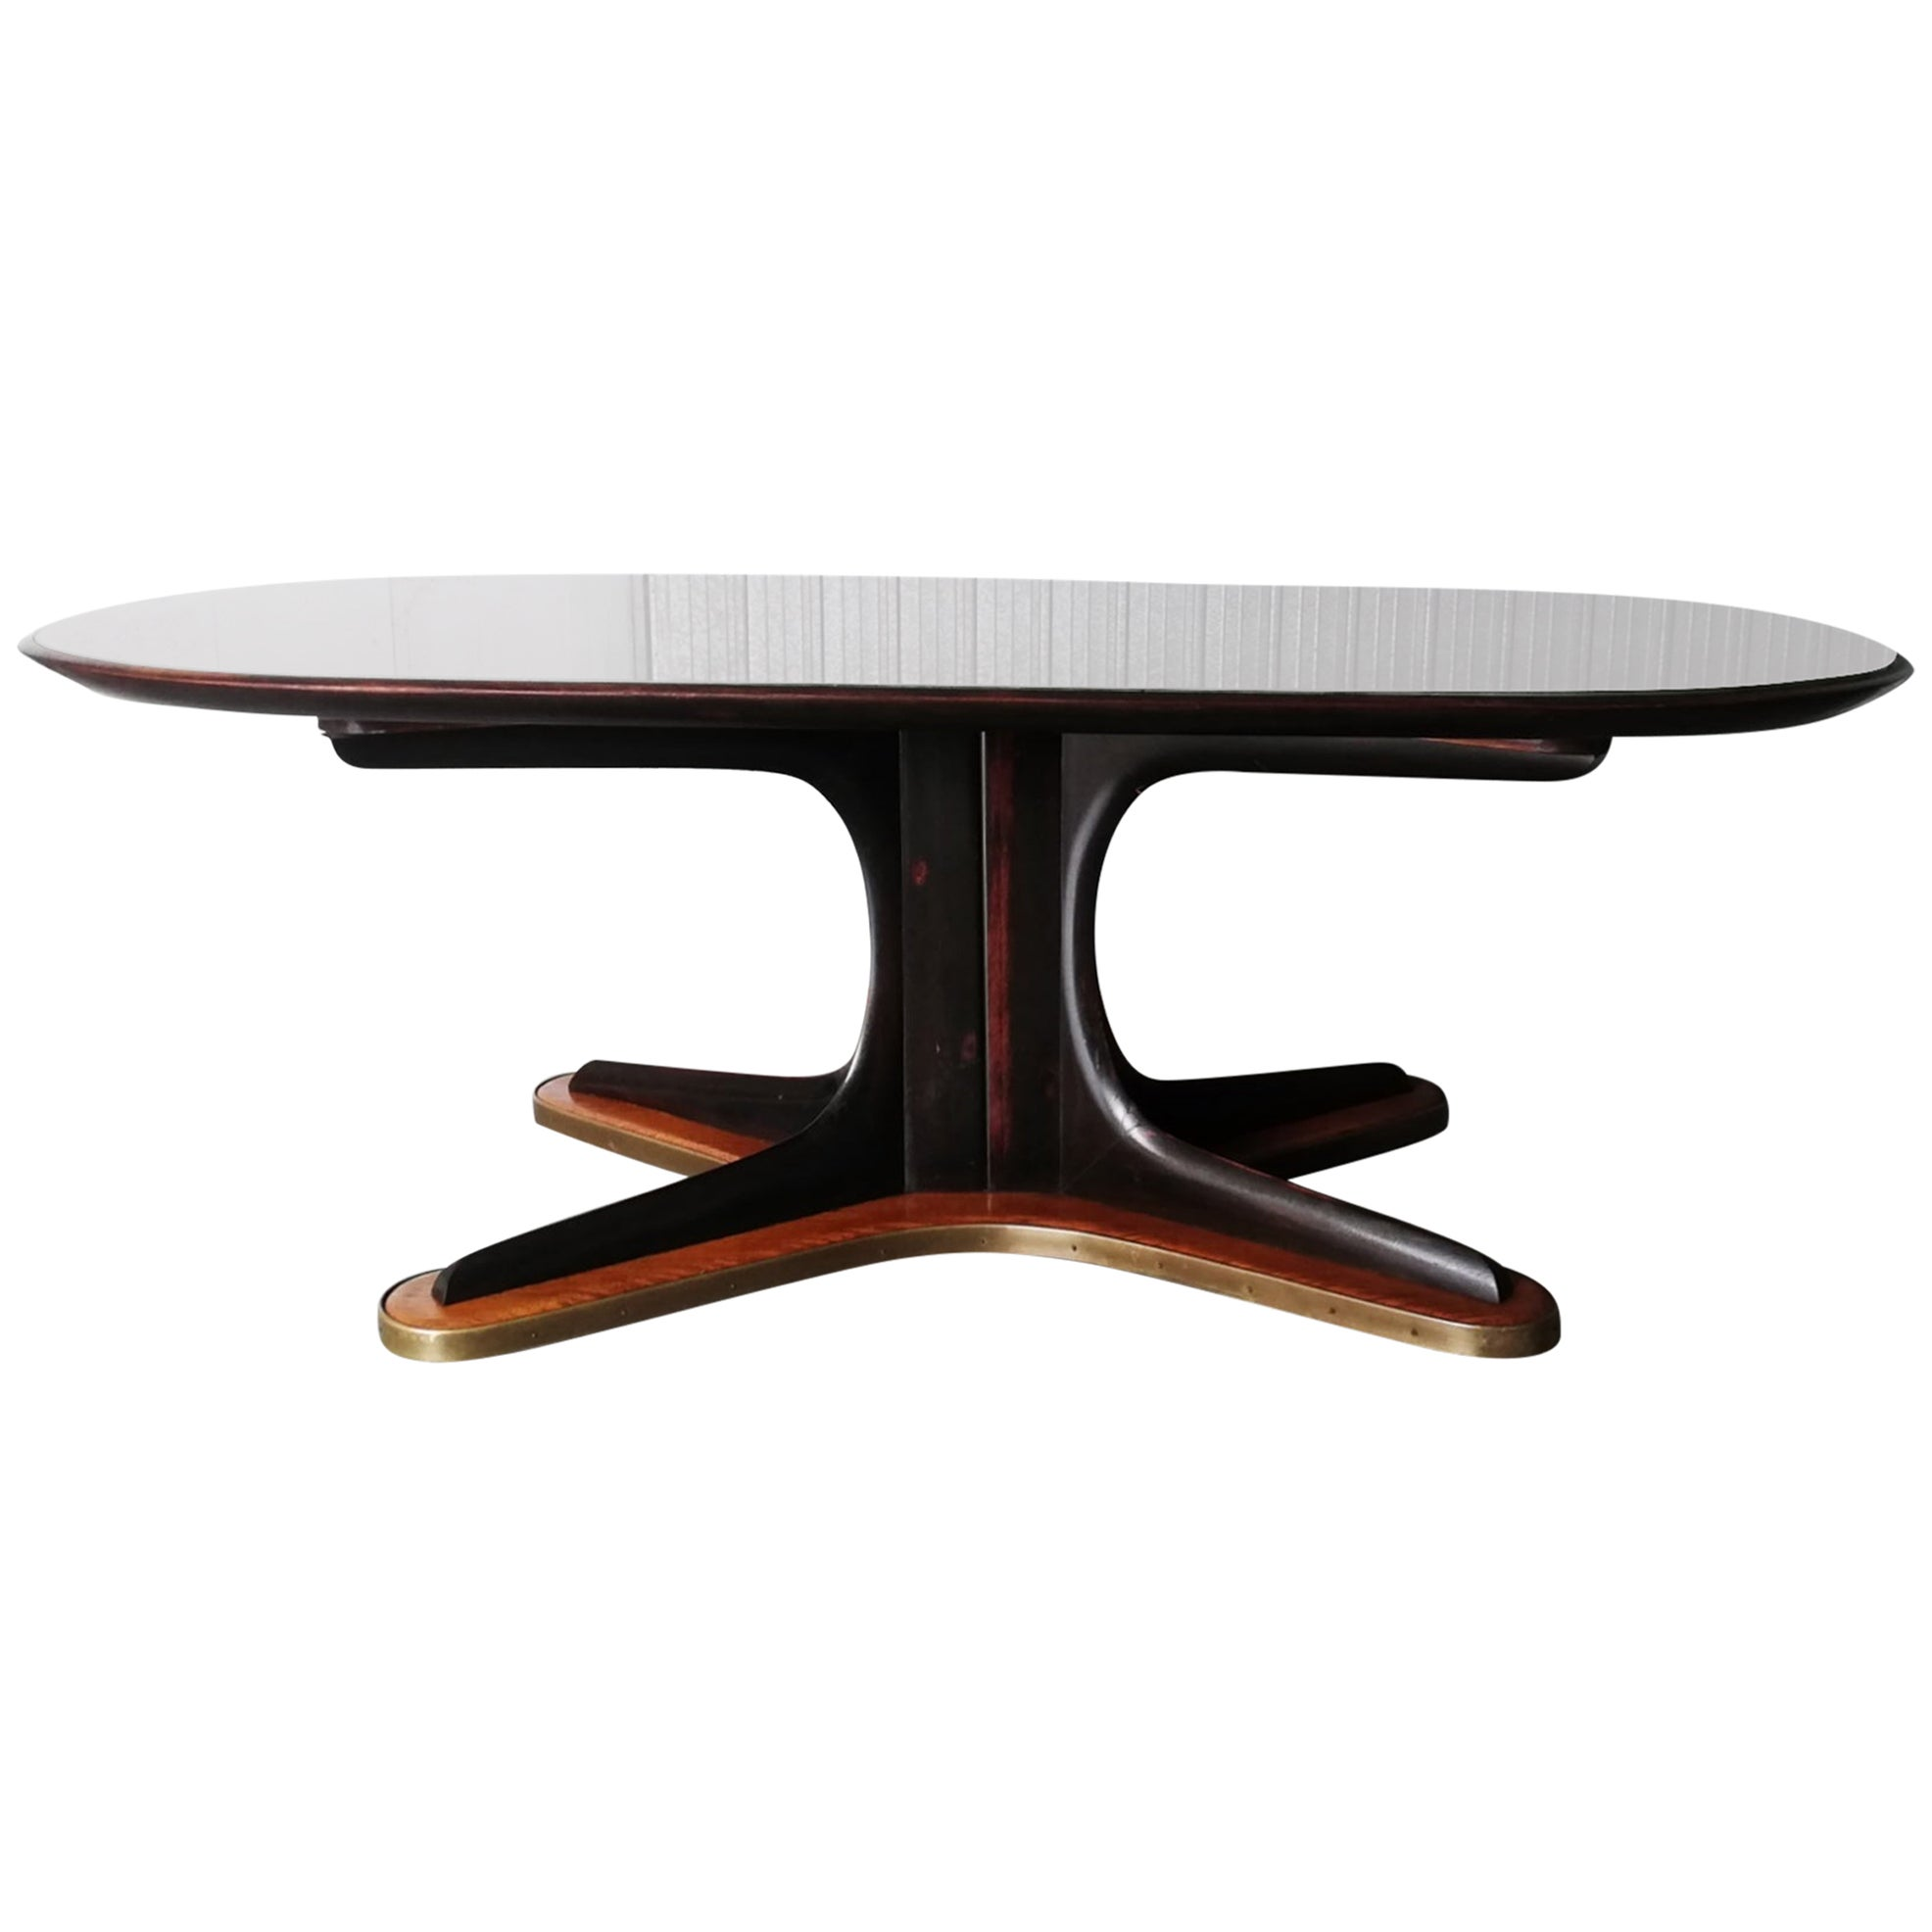 Midcentury Sculptural Dining Table by Vittorio Dassi